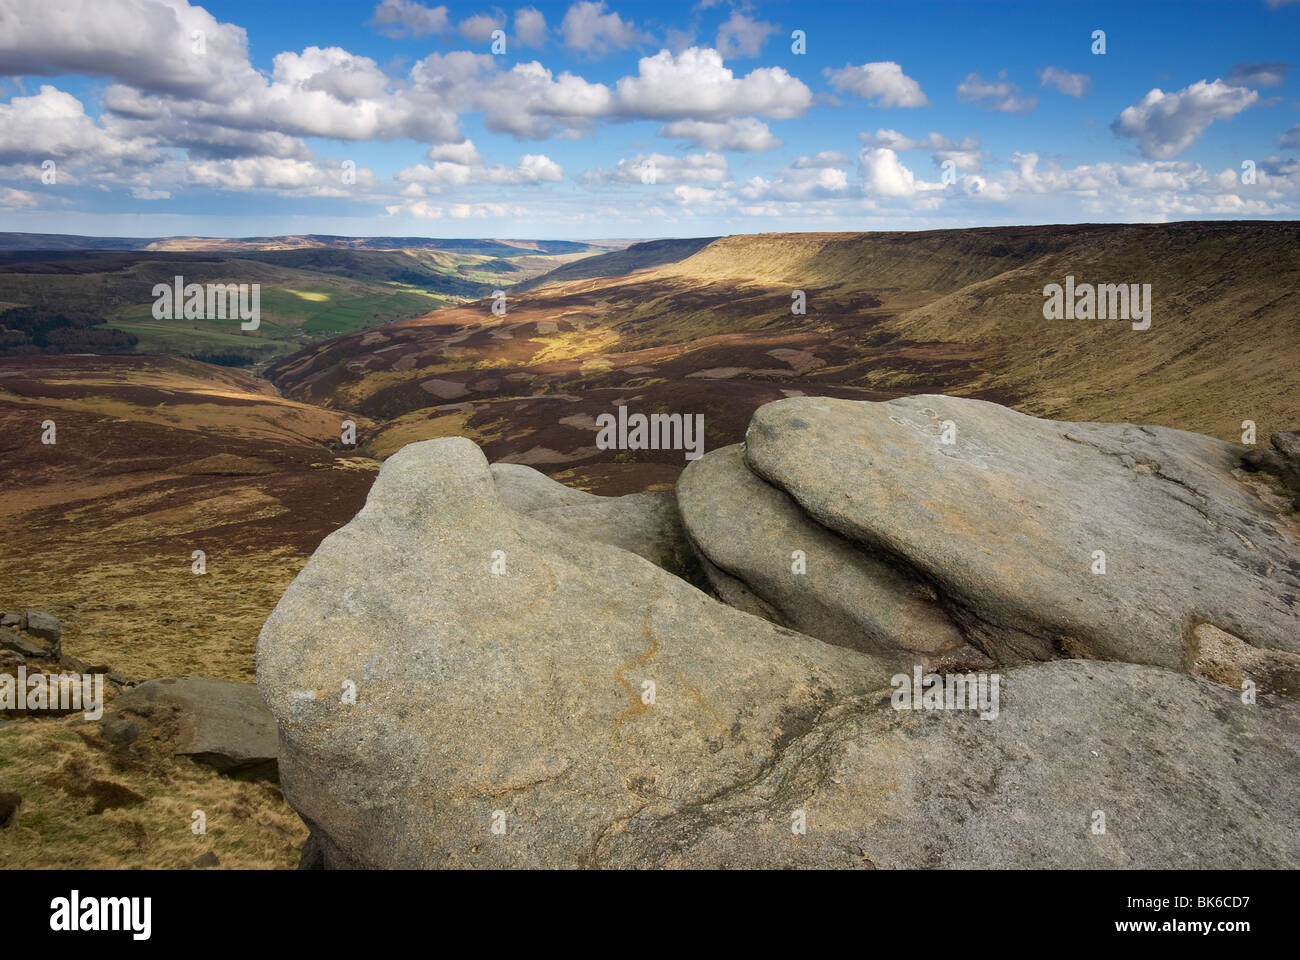 View from Fairbrook Naze, The Peak District National Park, UK, England - Stock Image